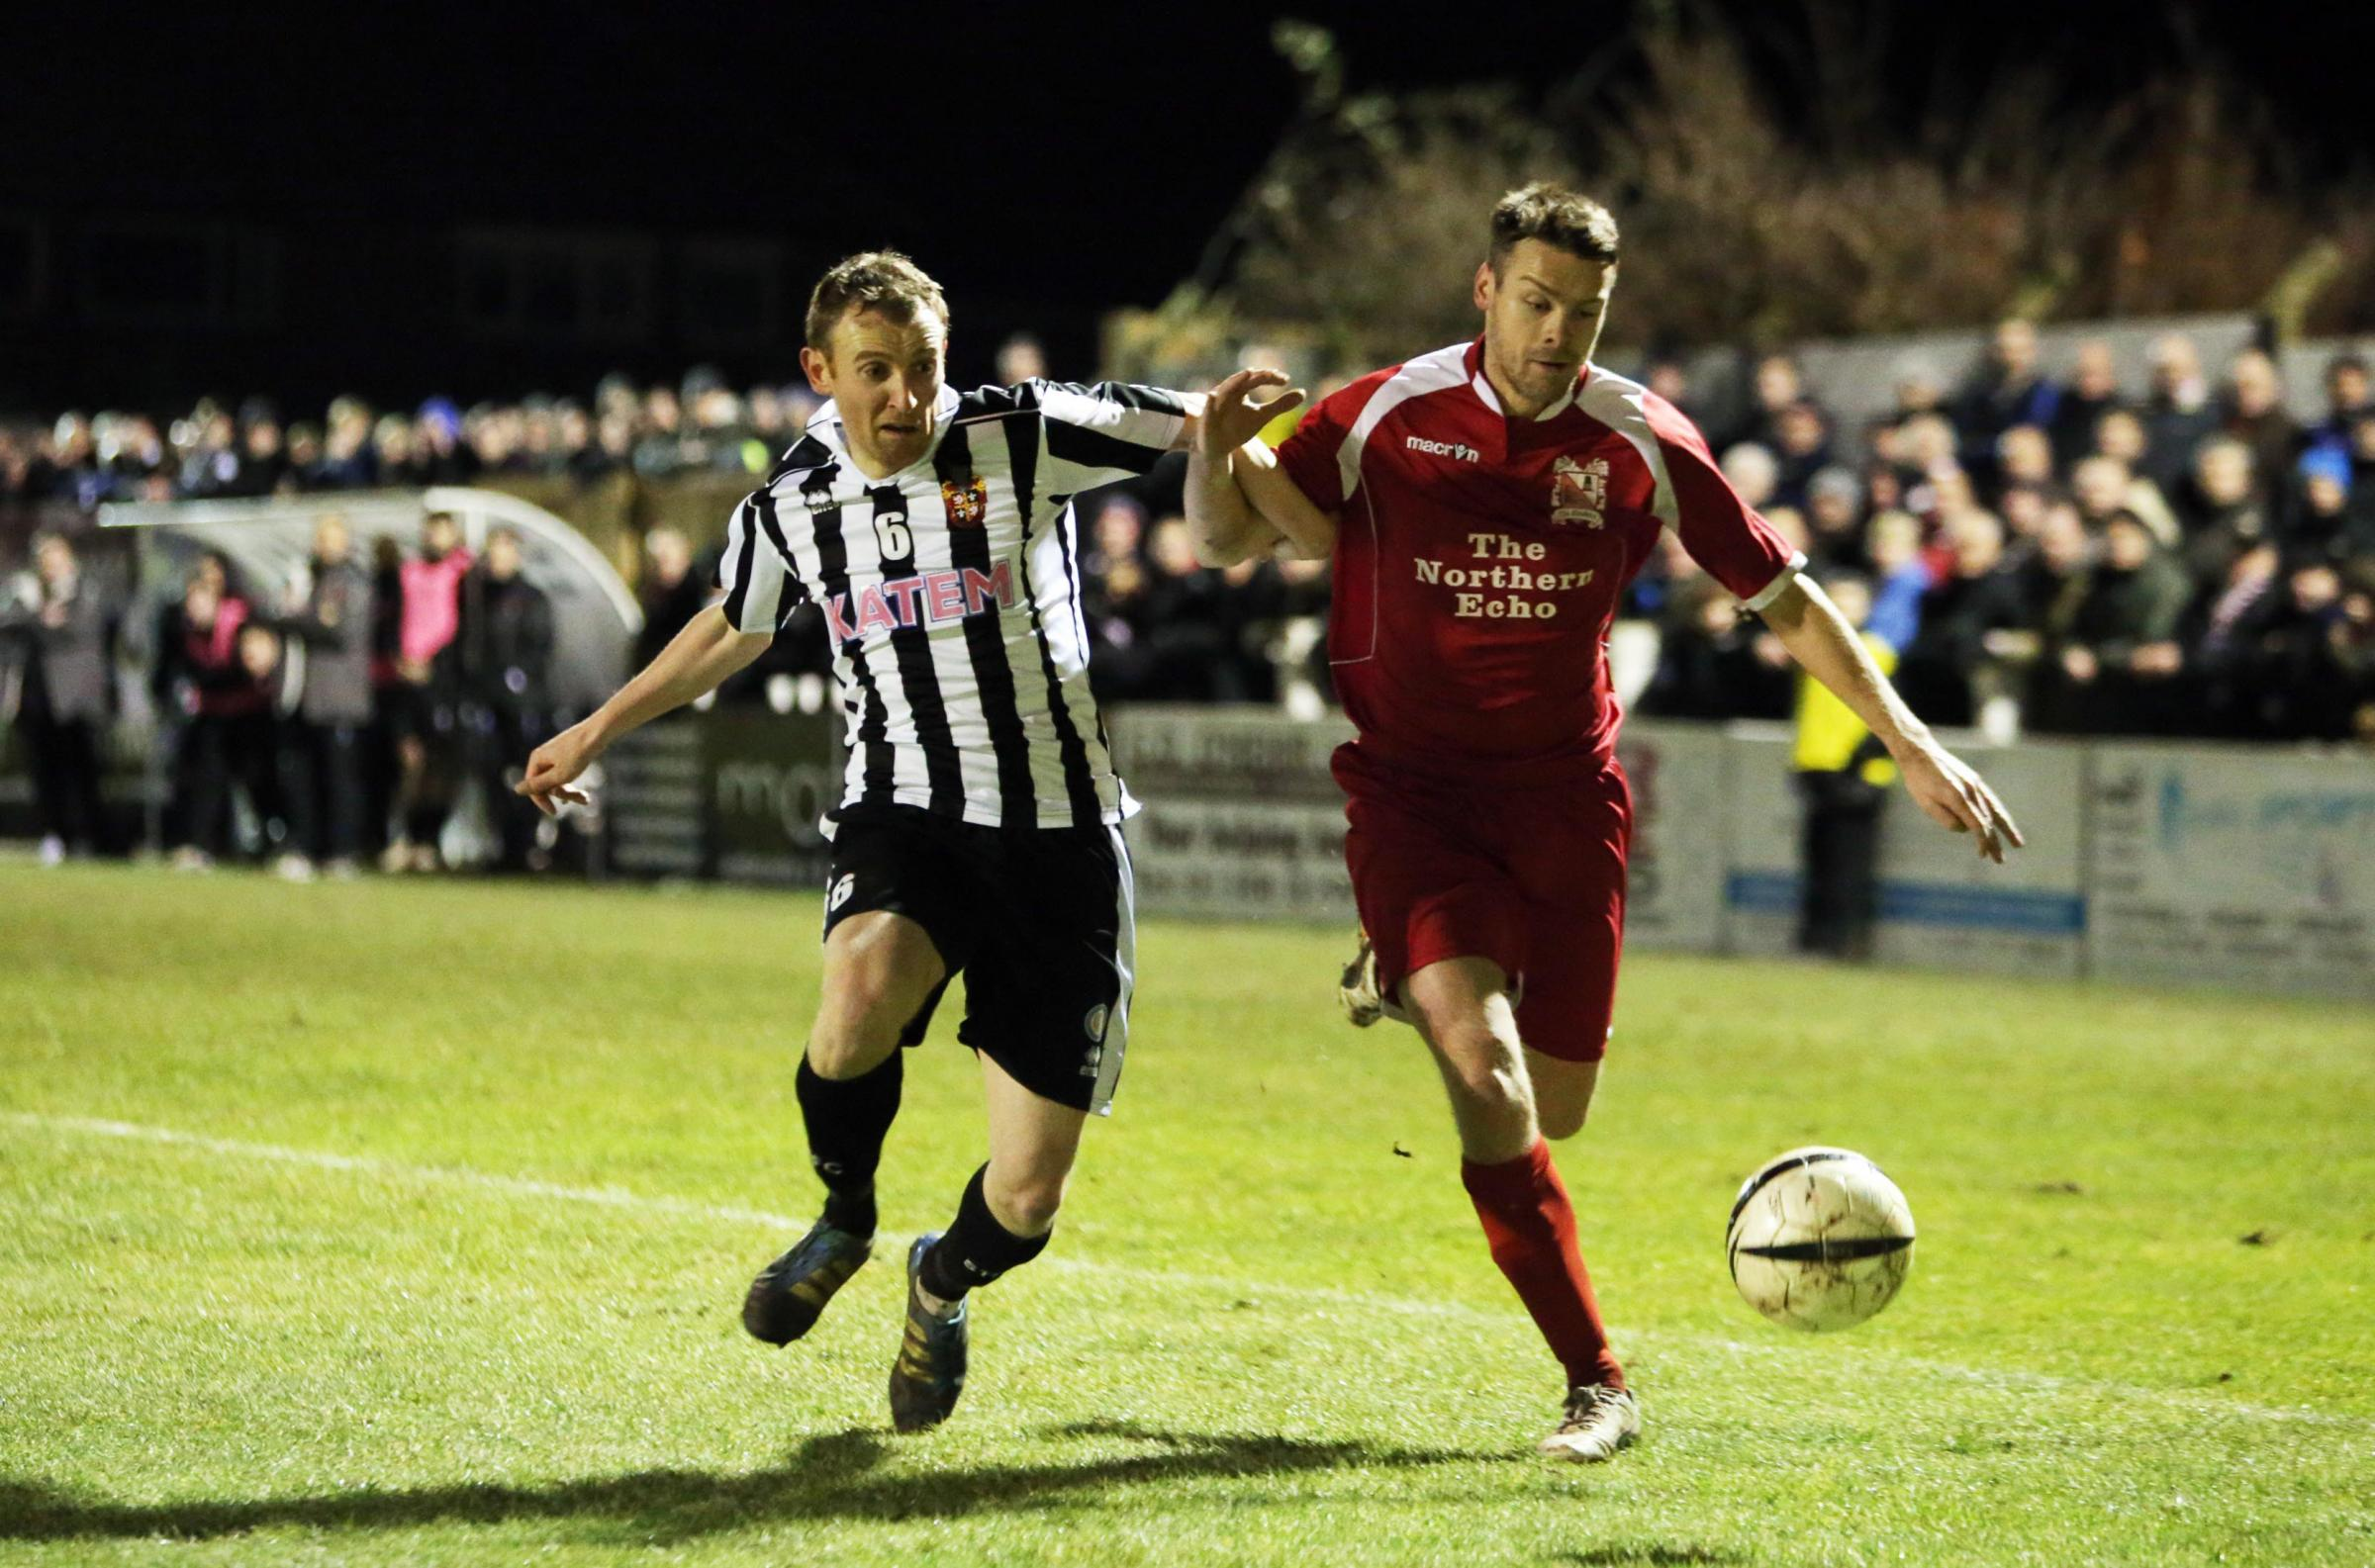 REPEAT SHOW: Darlington last season won a key game at Spennymoor, and Martin Gray wants a repeat this evening